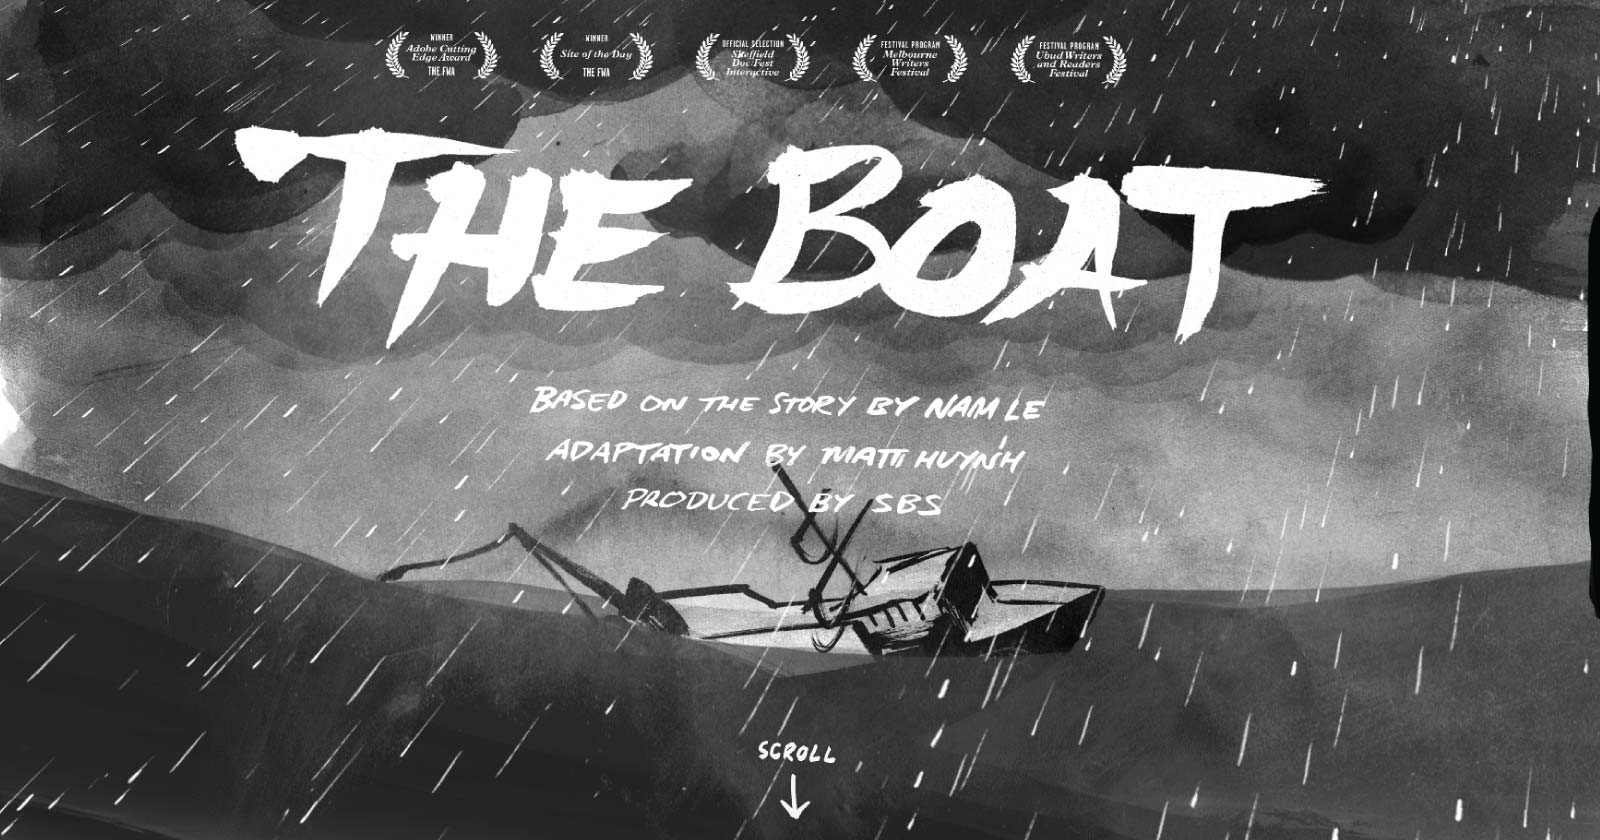 6 Brands That Will Inspire You to Create Better Content - The boat